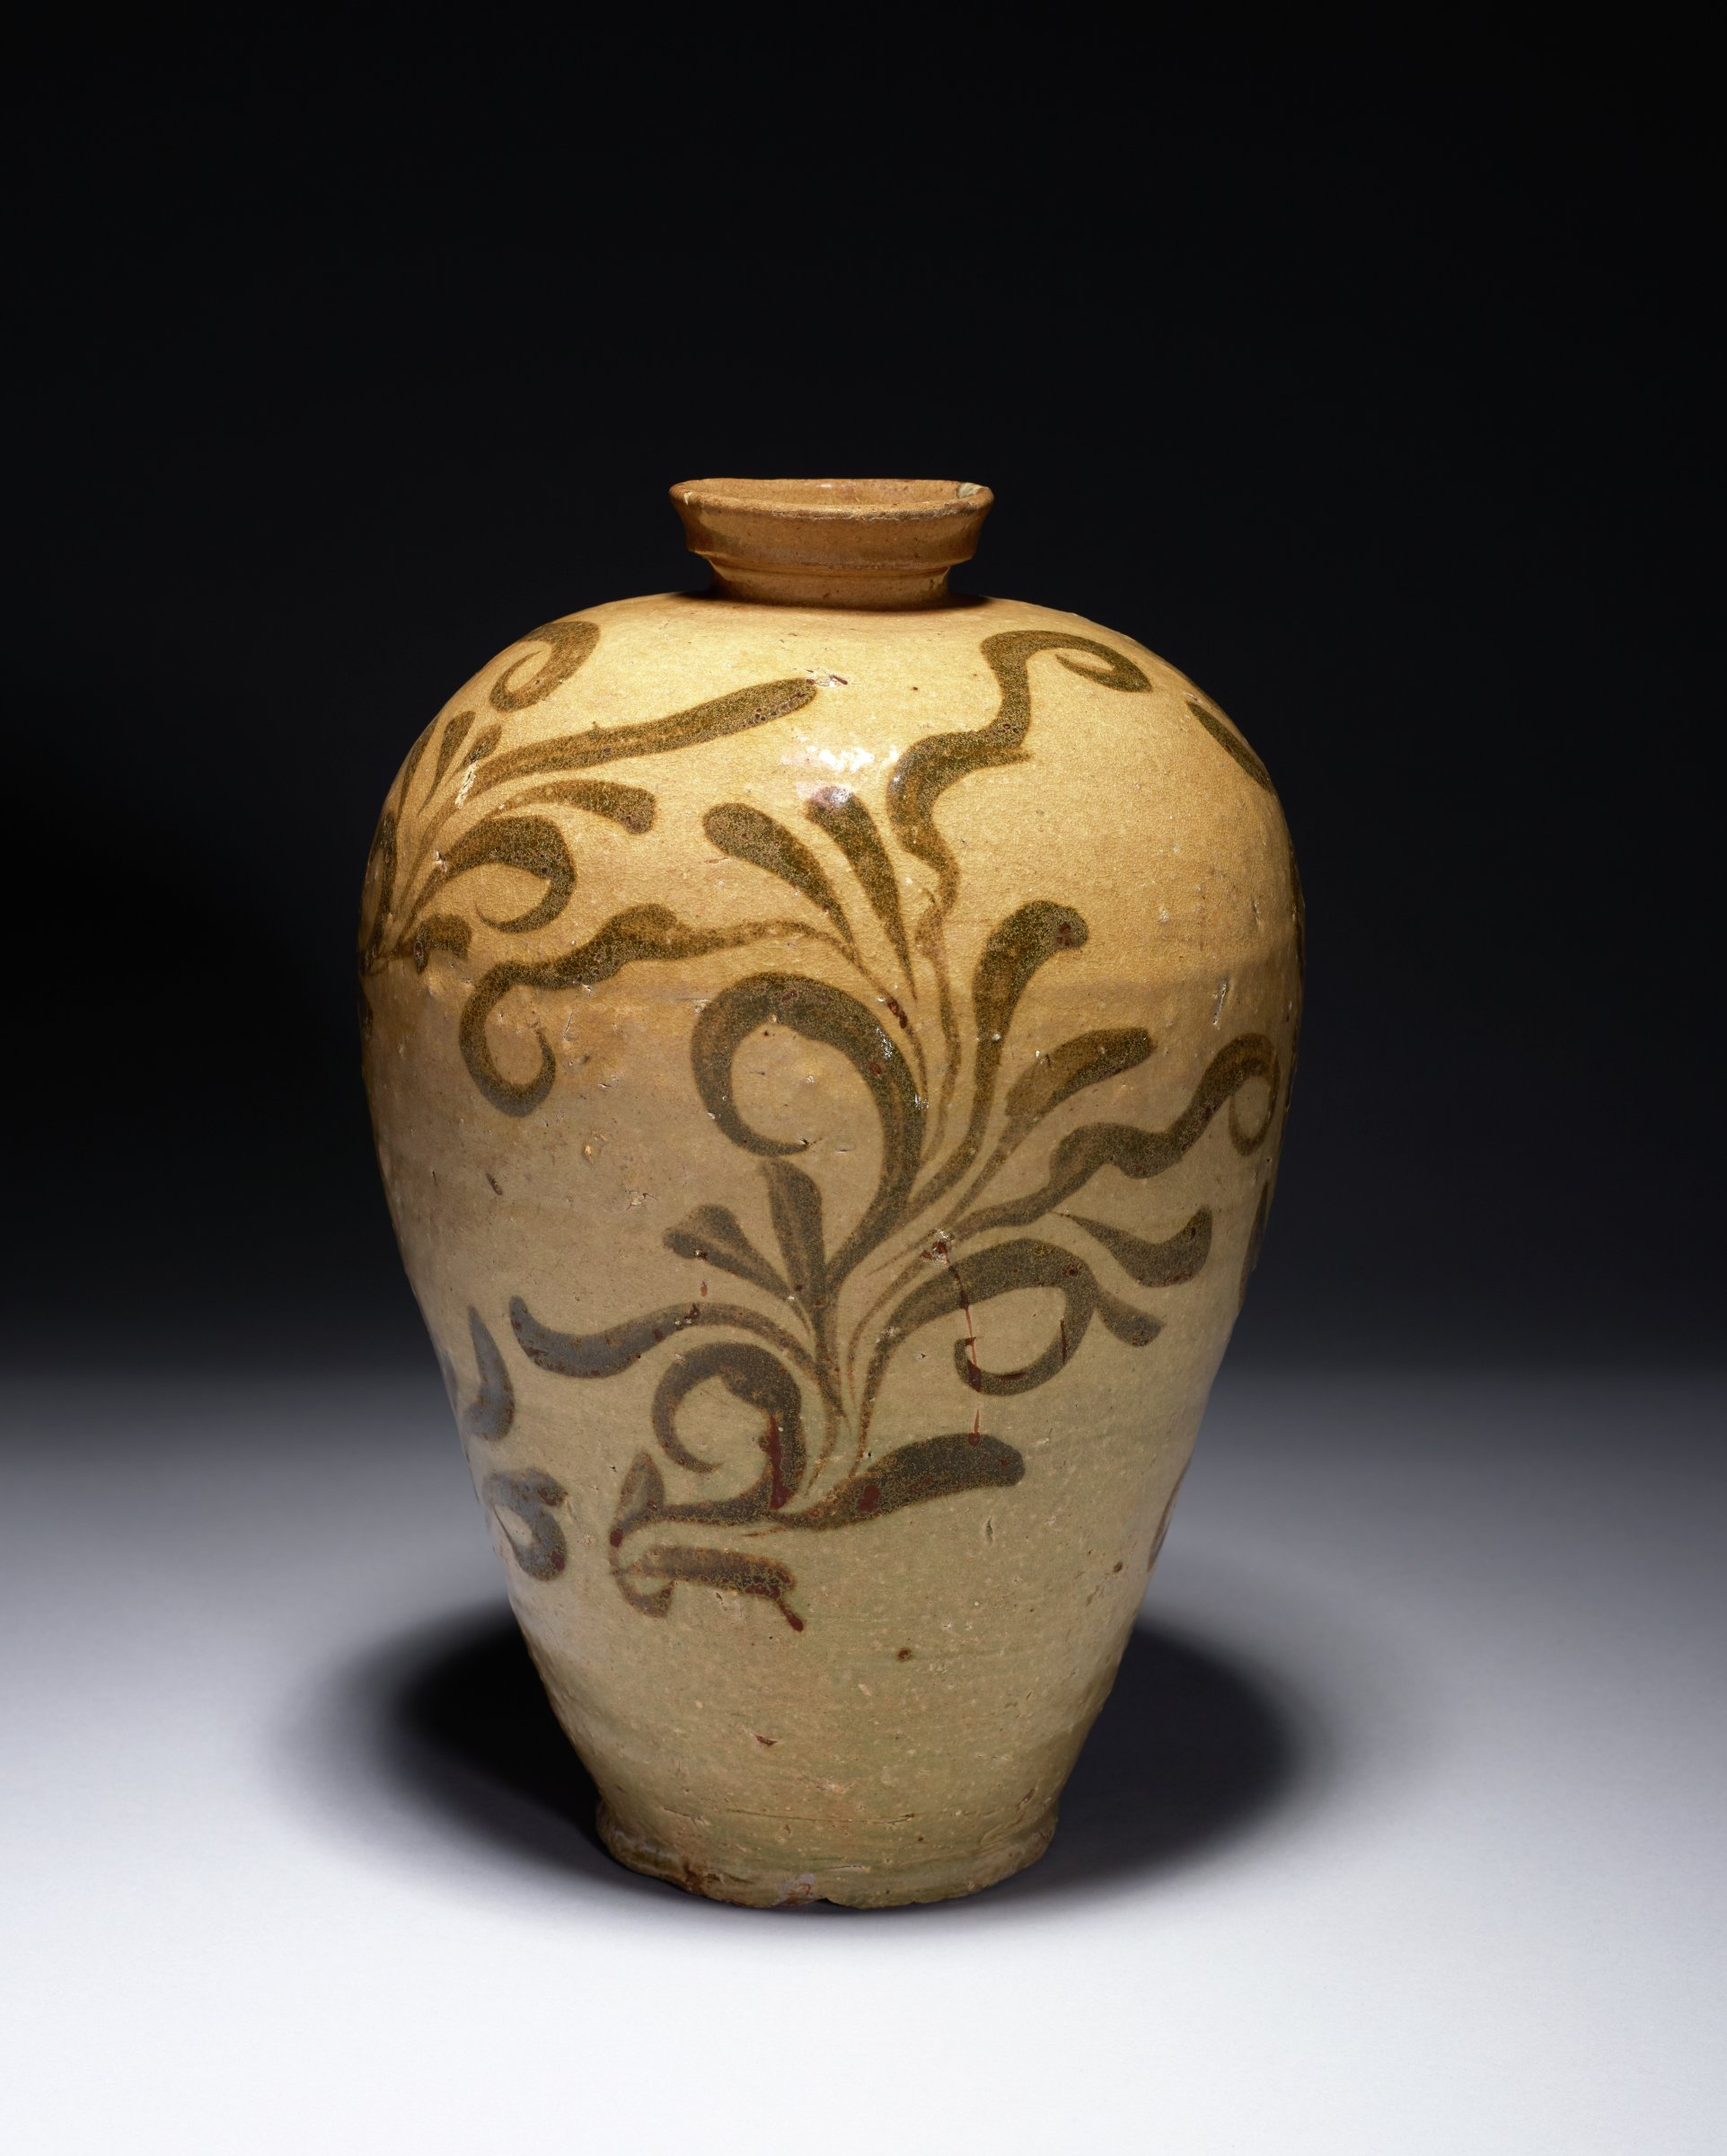 Vase with black foliate design on red clay body with clear and colored glazes. Repaired chip in lip. lightweight